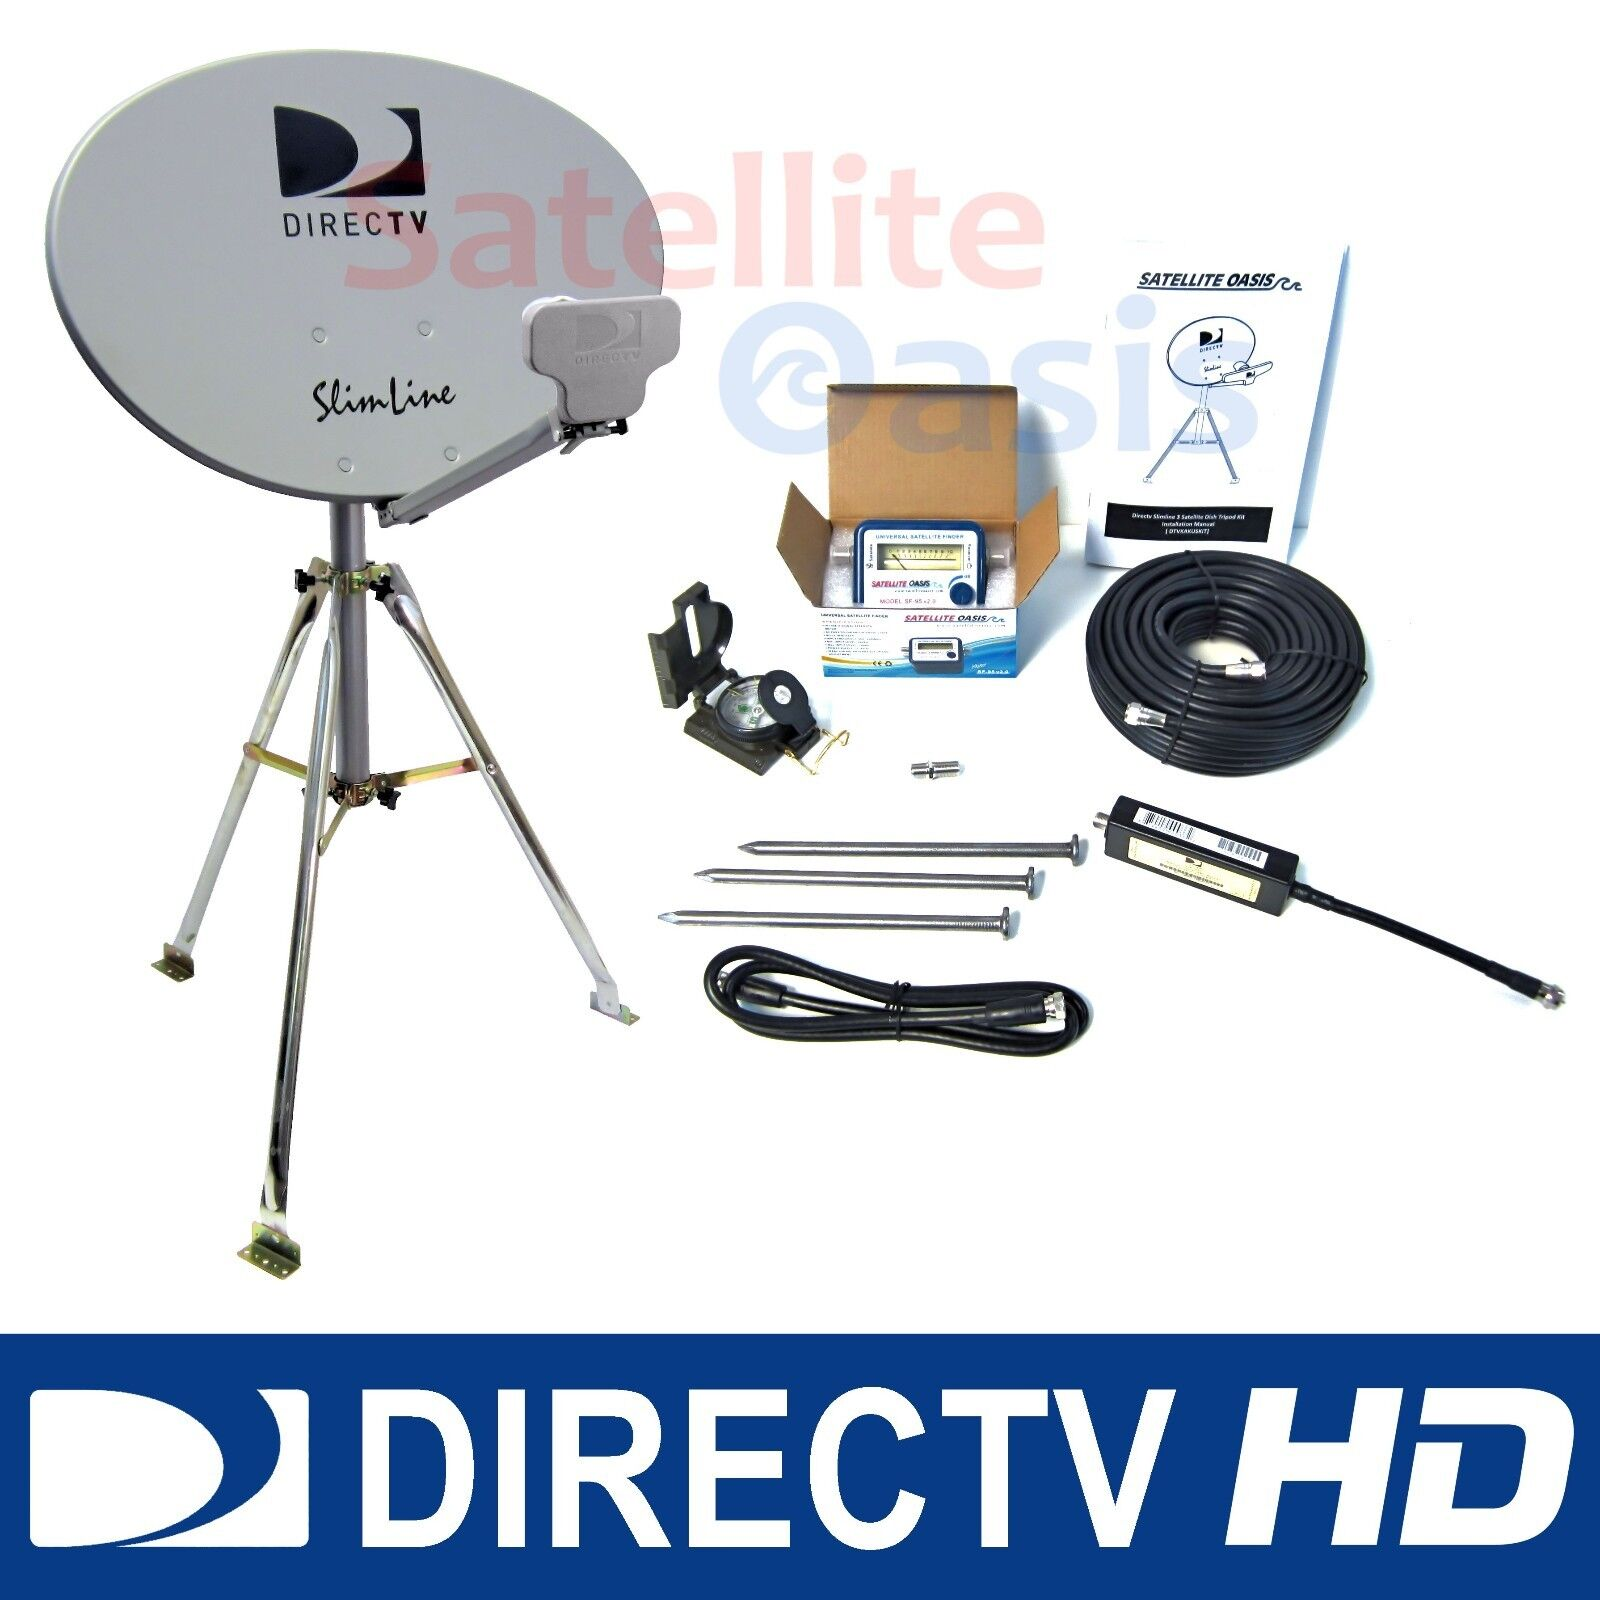 directv dvr wiring diagram 12 volt for garden lights hdtv ad